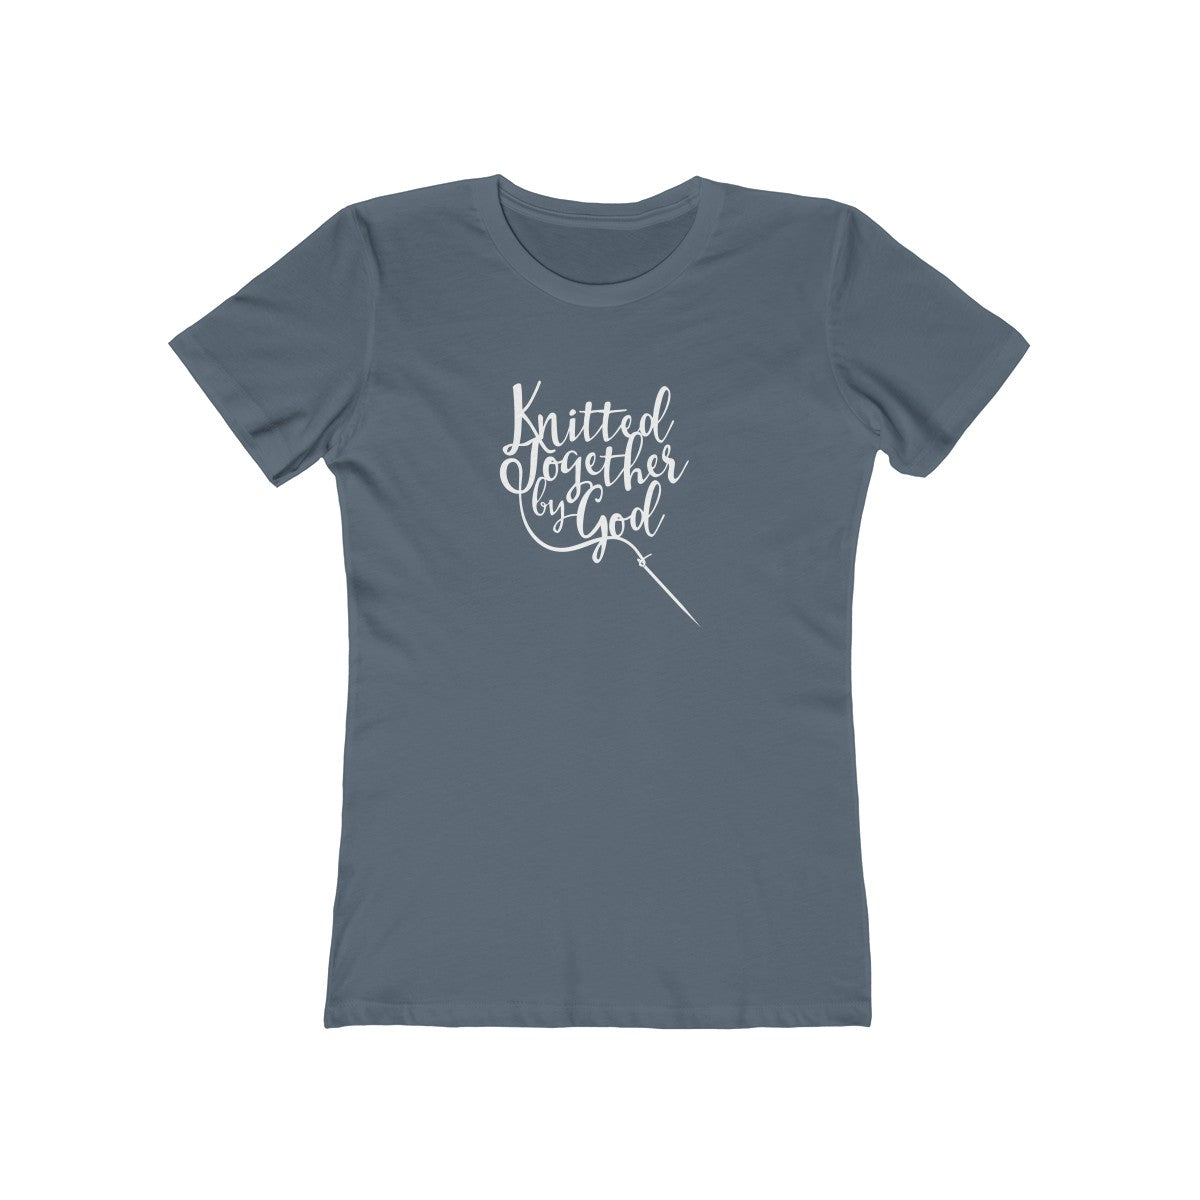 Knitted Together By God Women's Tee - Dark Colors